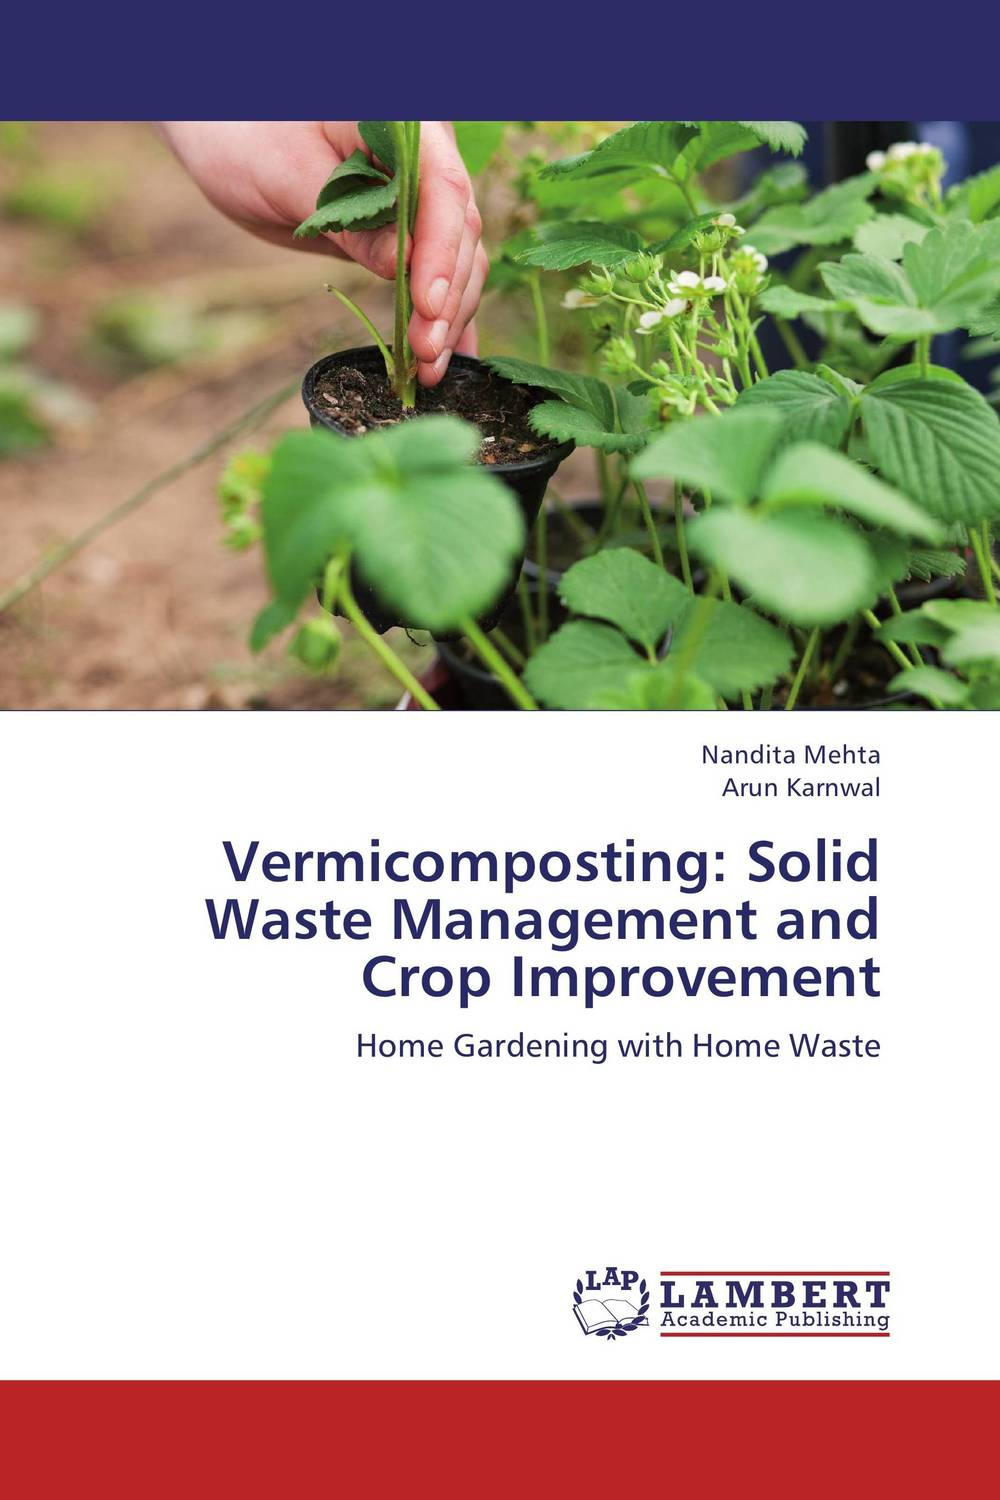 Vermicomposting: Solid Waste Management and Crop Improvement